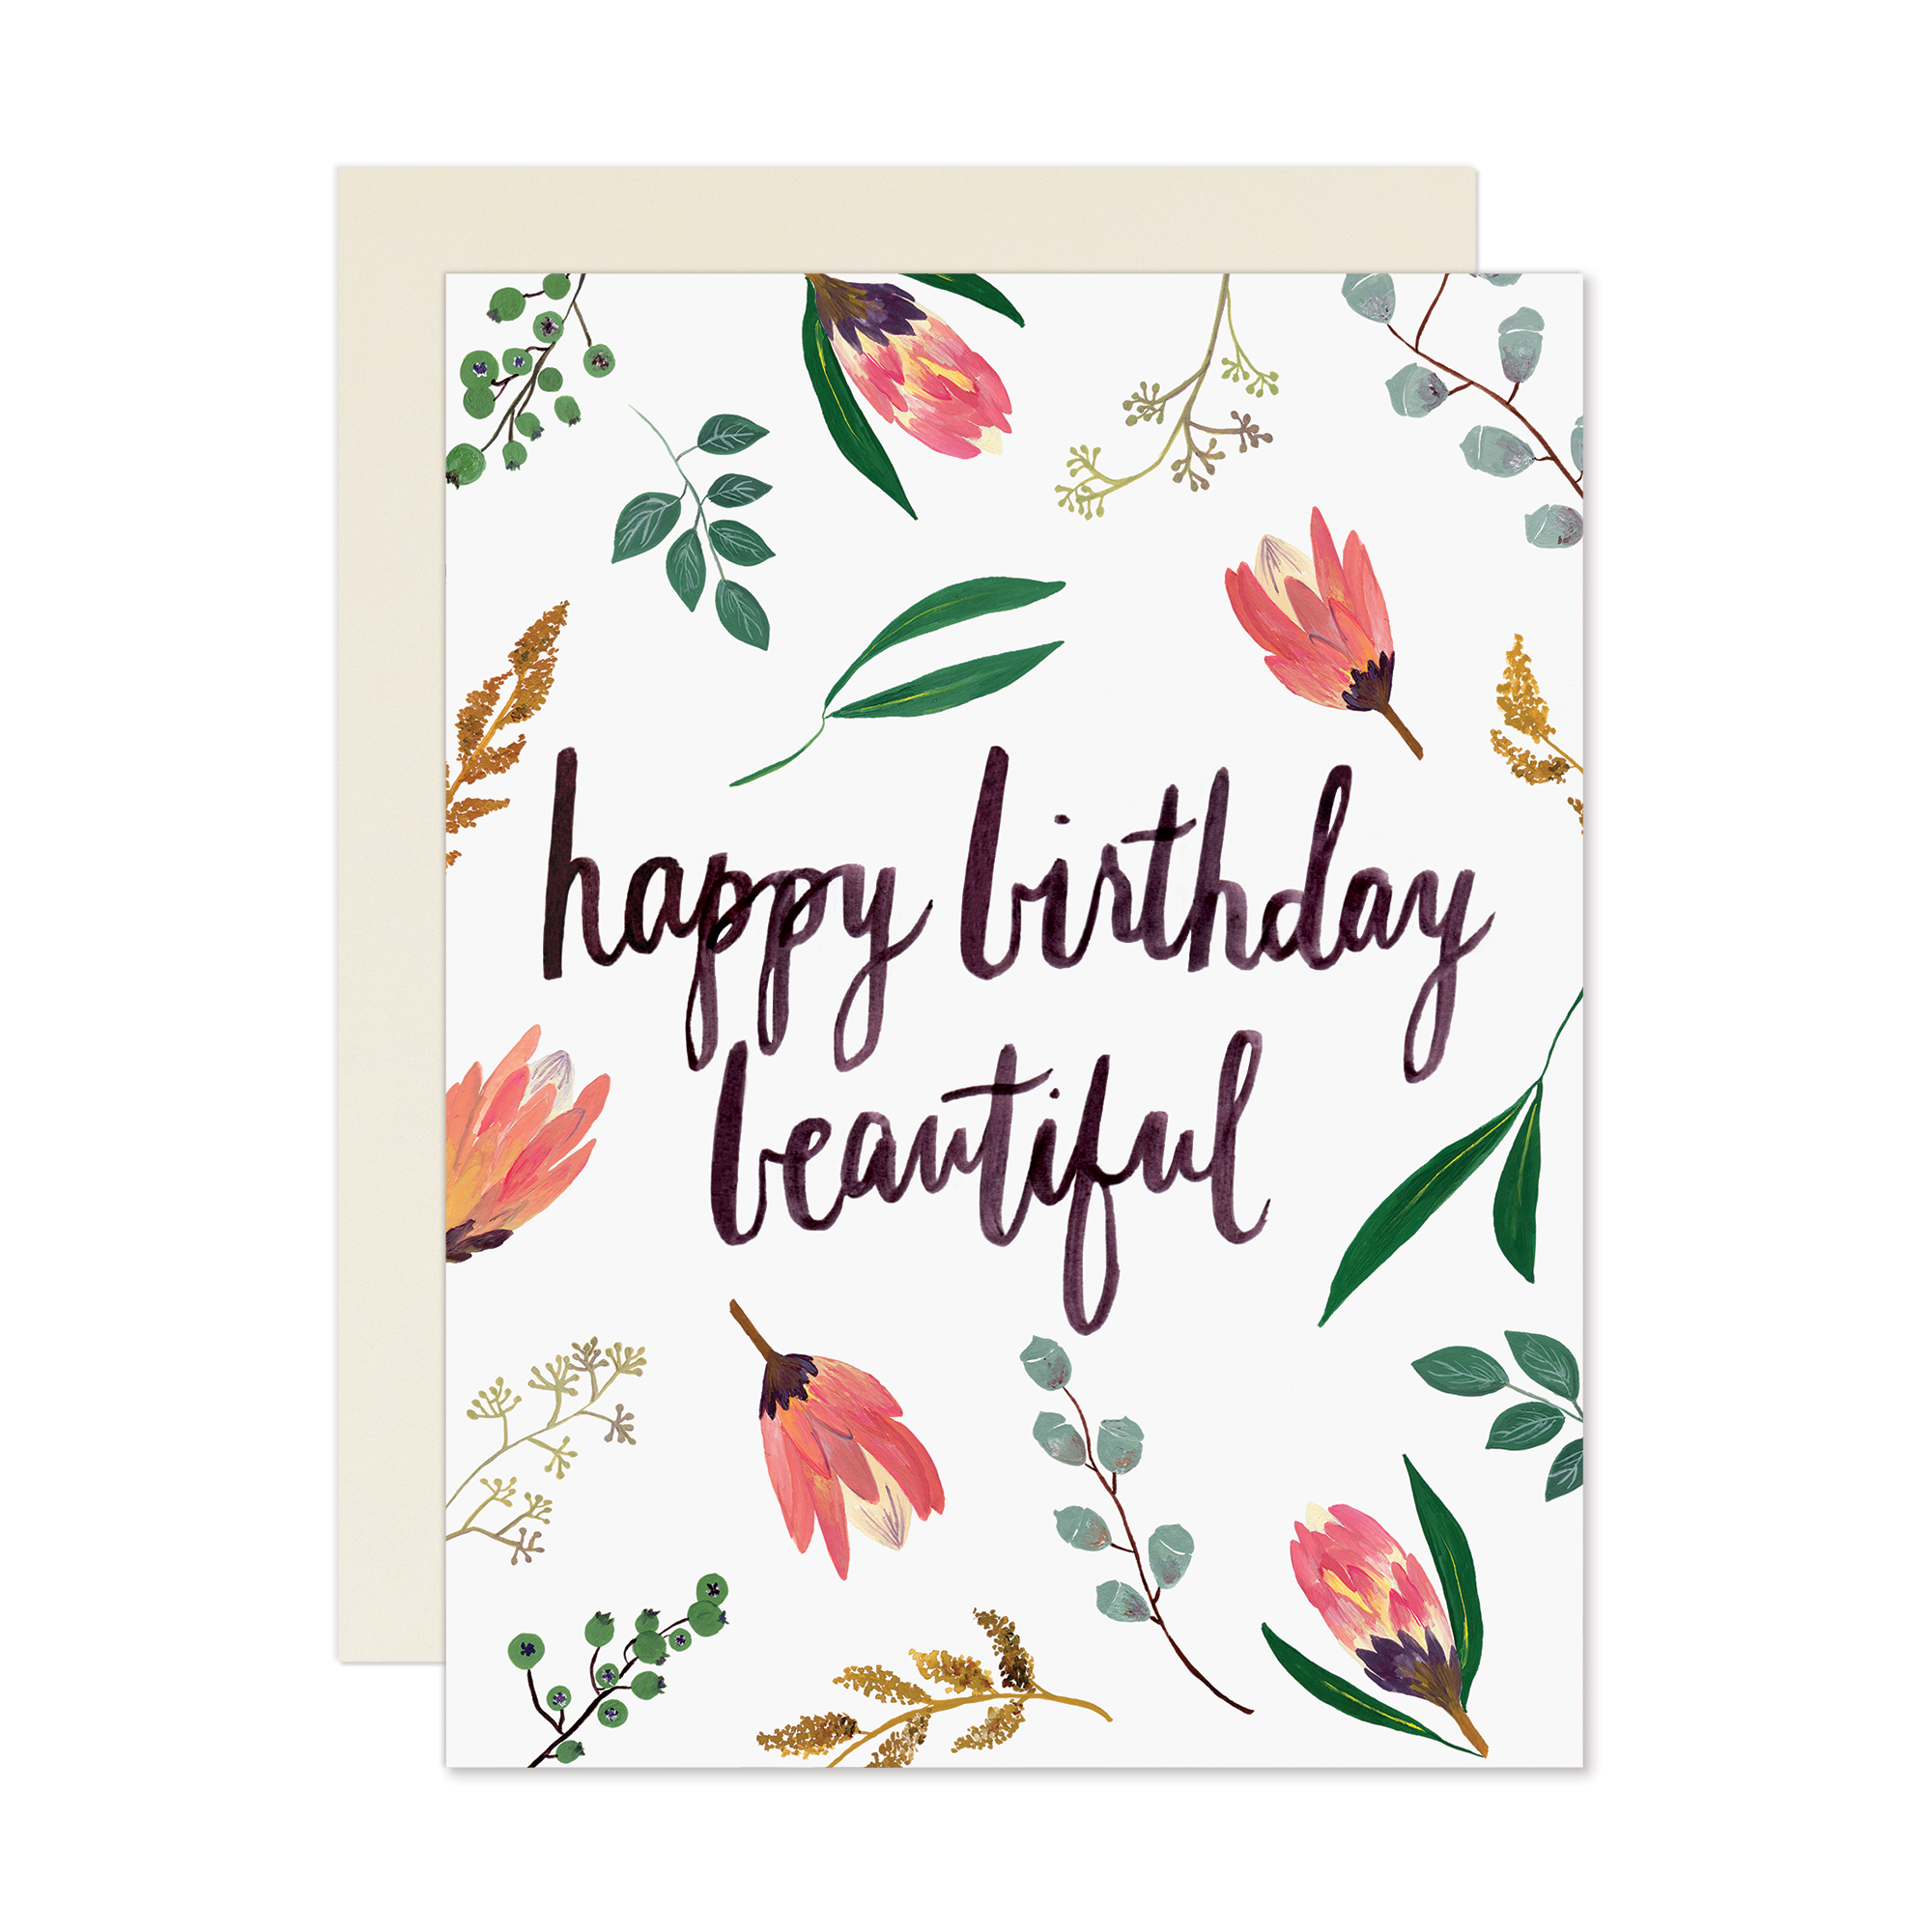 Happy birthday beautiful card happy birthday beautiful pinterest